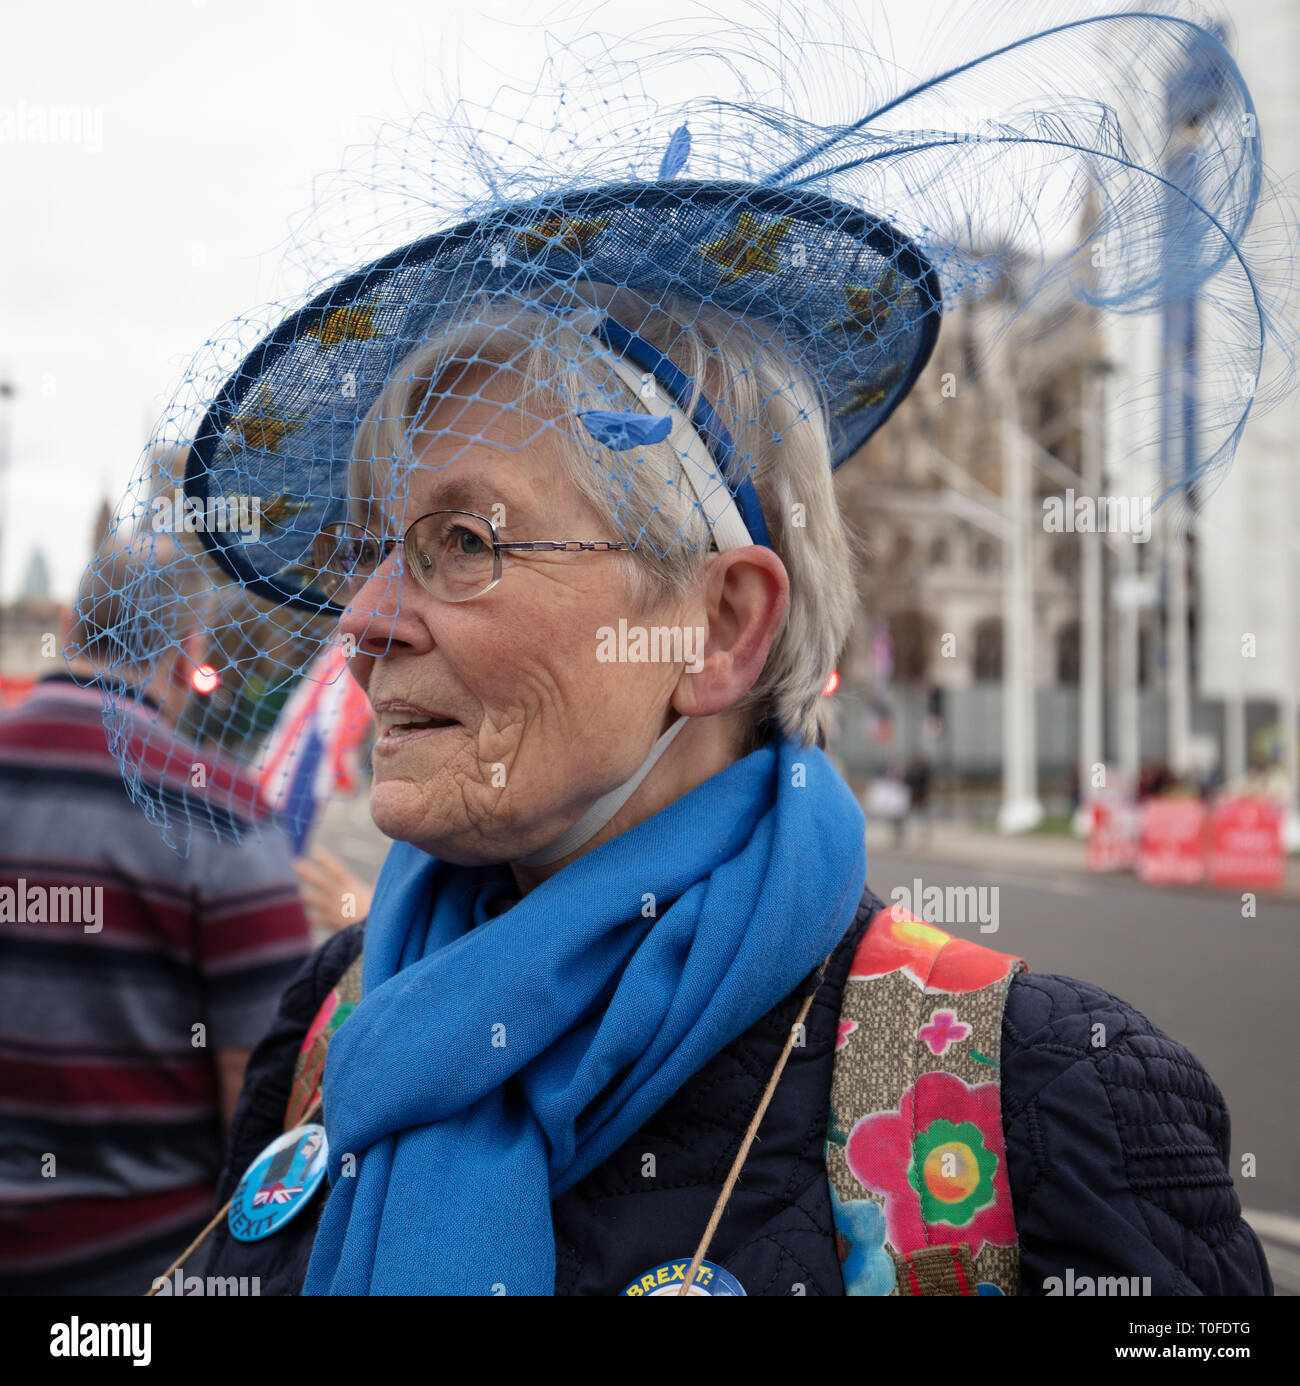 London, UK. 19th March, 2019. Remainer protester in front of Parliament, Parliament Square, London, UK. Credit: Joe/Alamy Live News - Stock Image